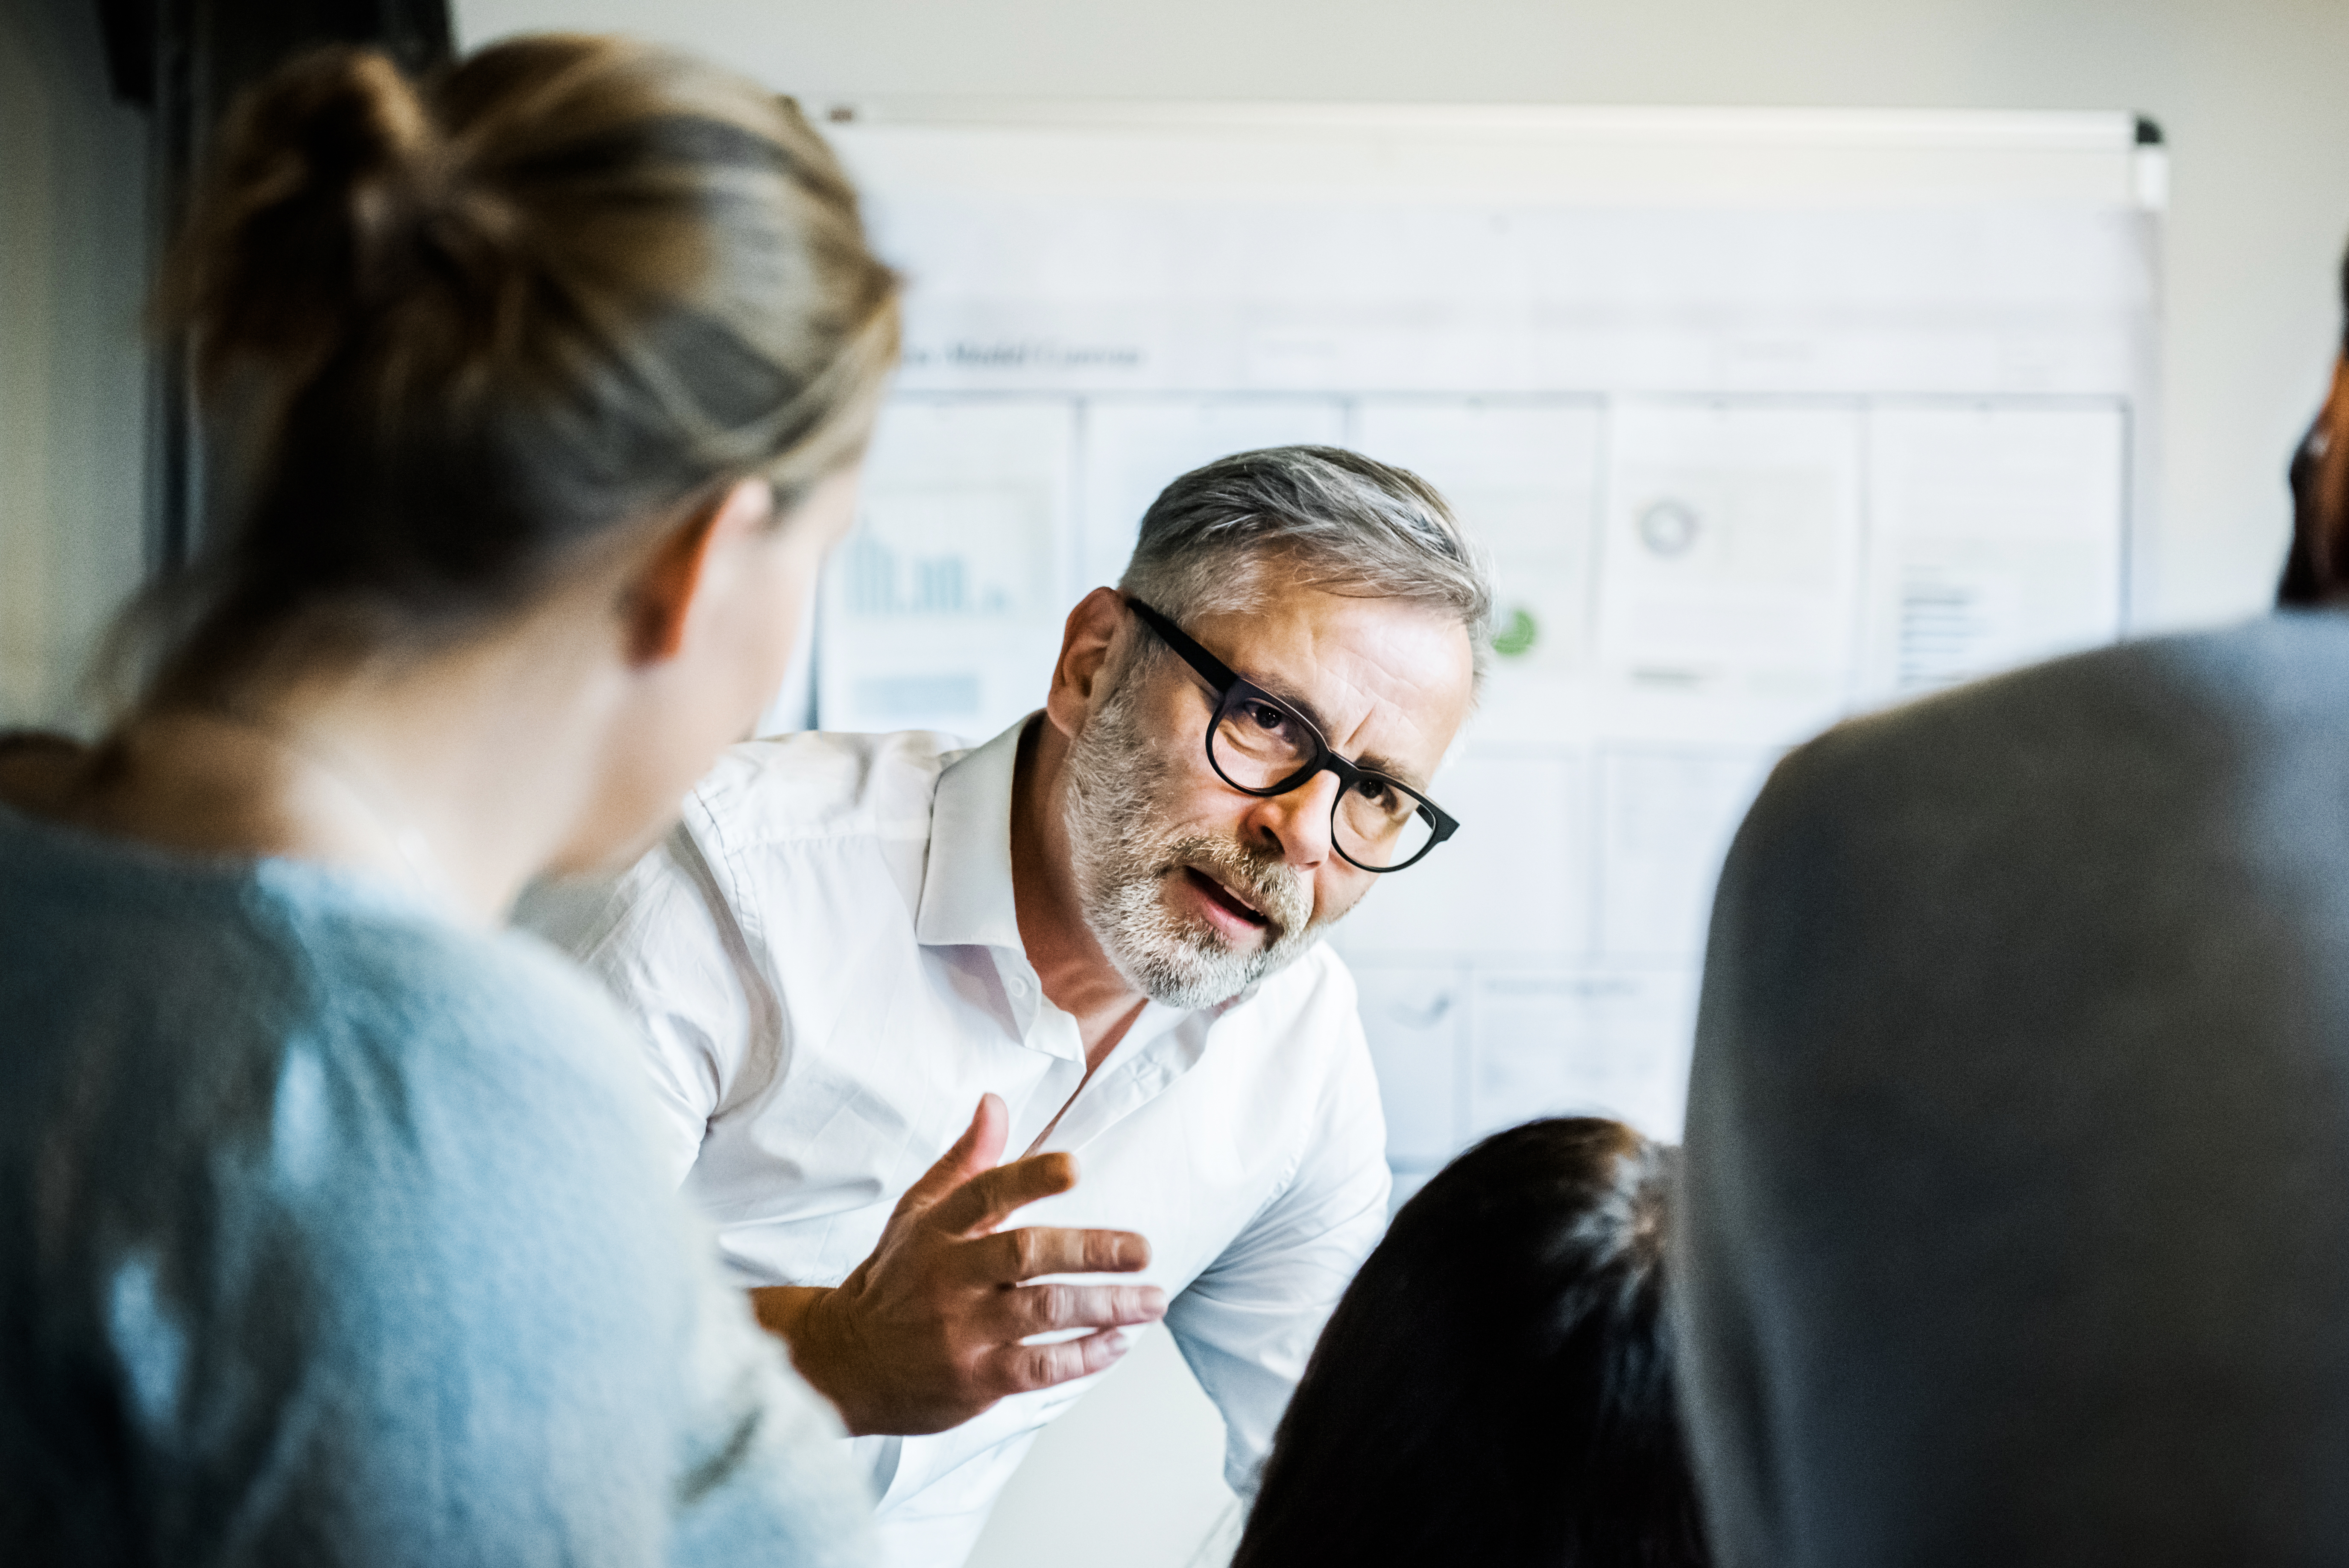 c9b5f78f56d The Importance of Interaction in Workplace Issues